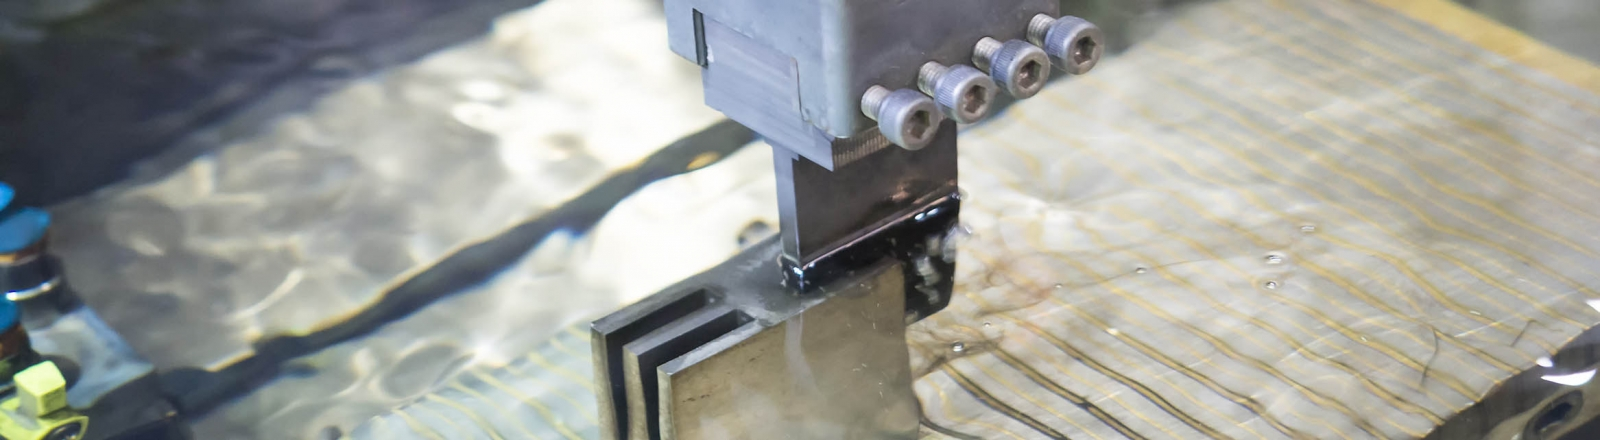 QT Manufacturing | Injection Mold Making | Plastic Injection